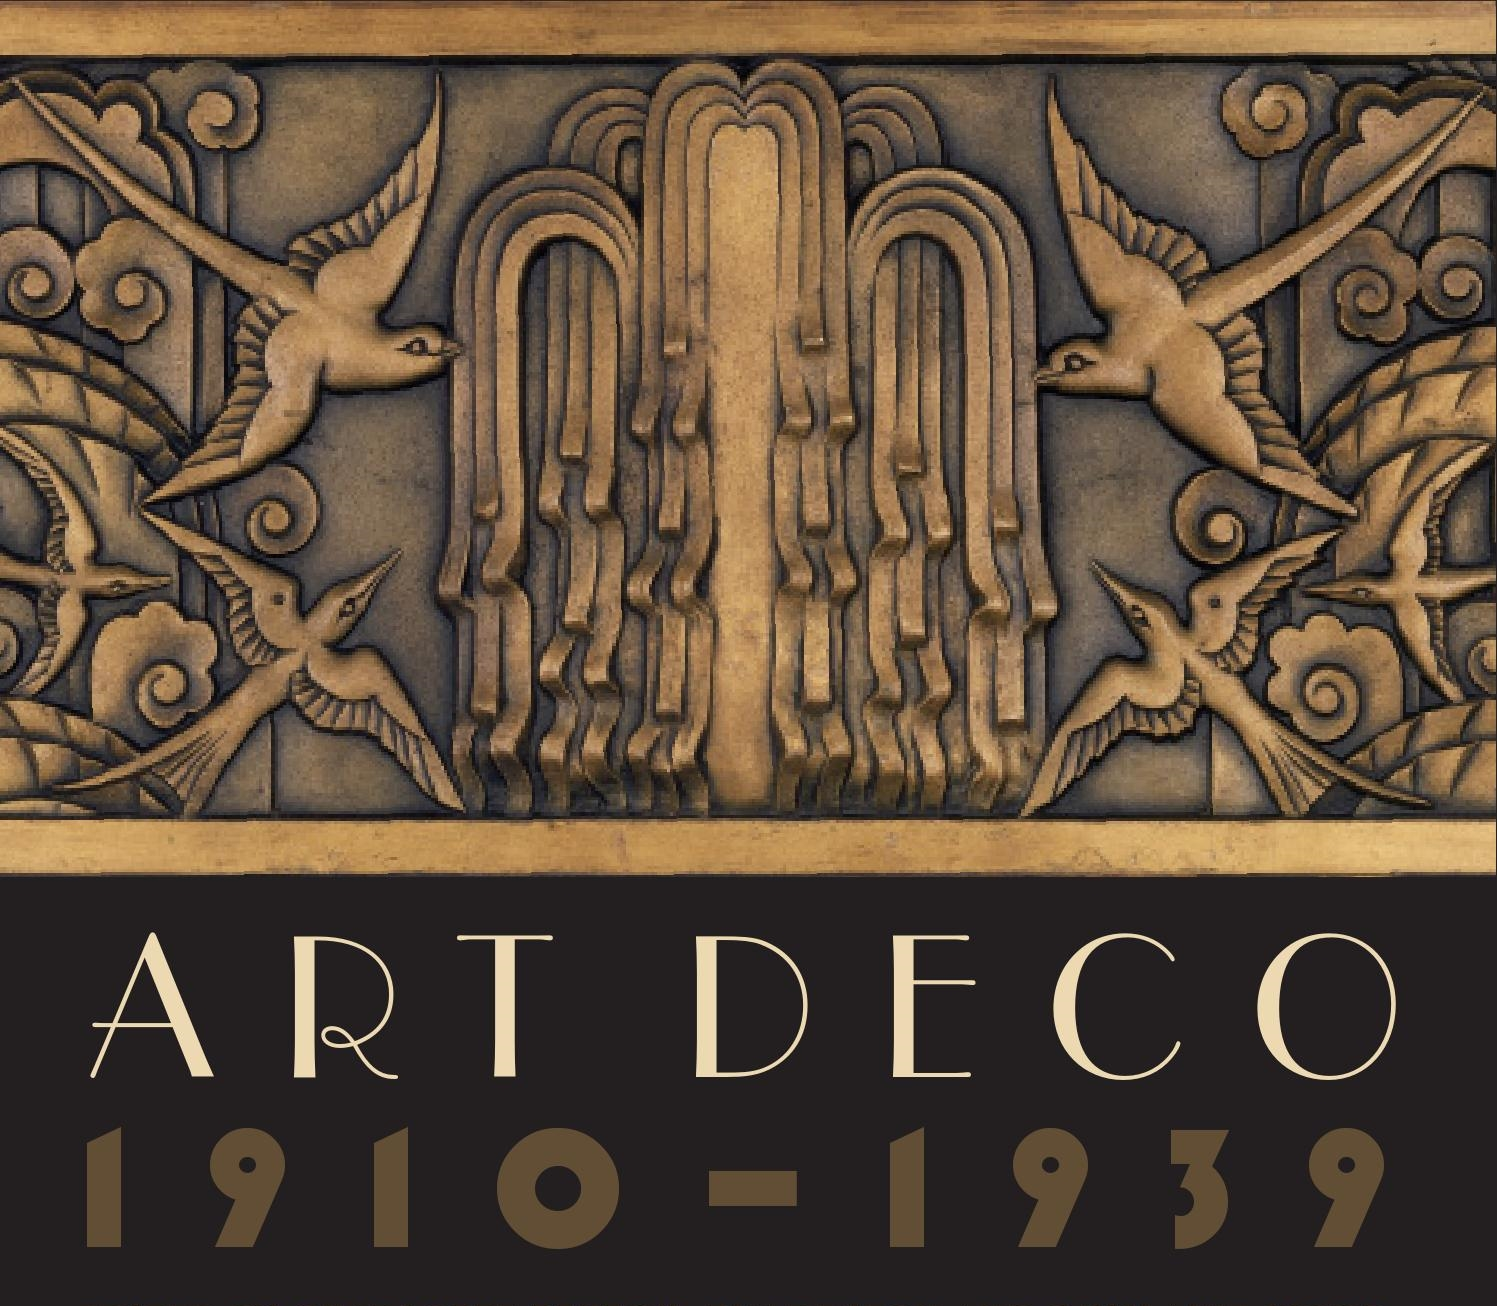 ' Art Deco 1910-1939 ' by Charlotte and Tim Benton